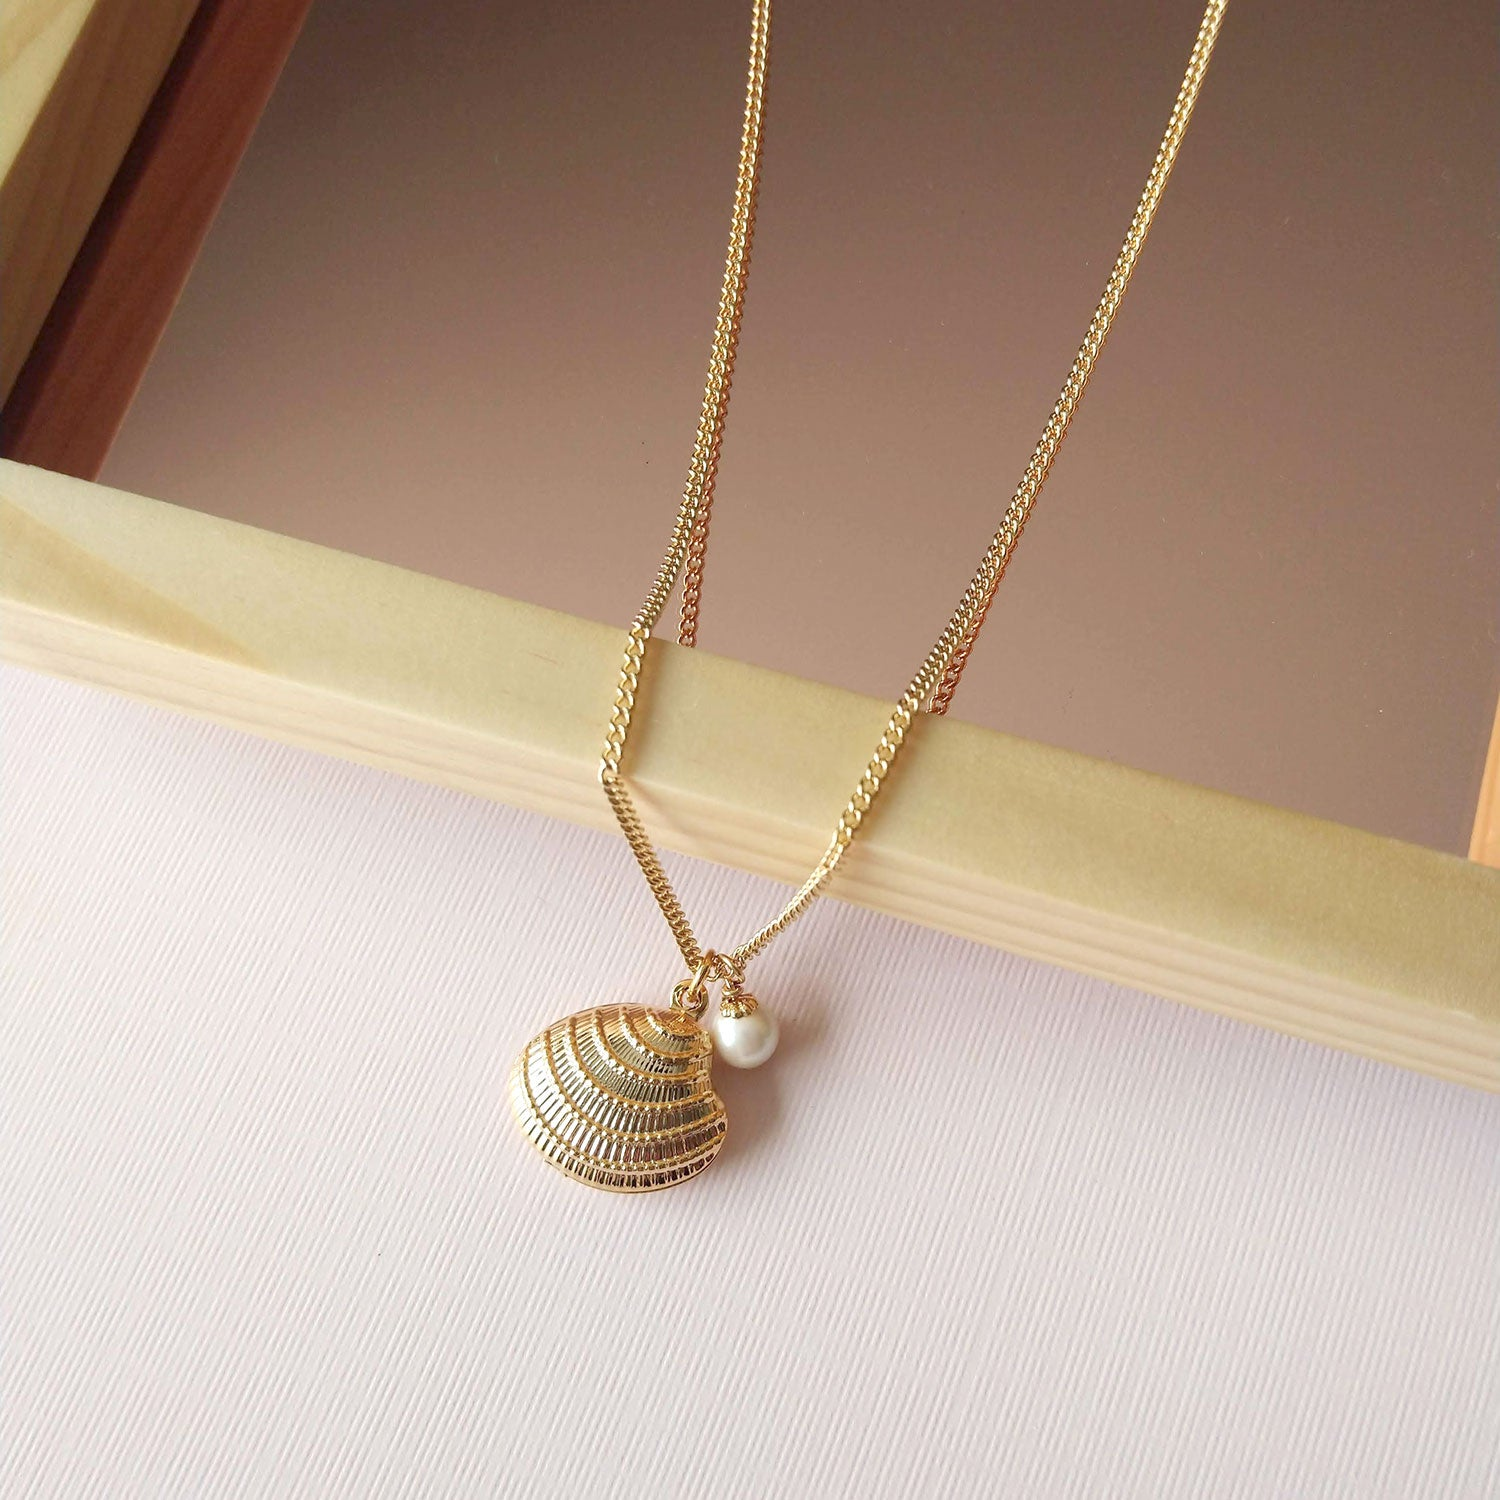 Oyster charm necklace (SD1473)